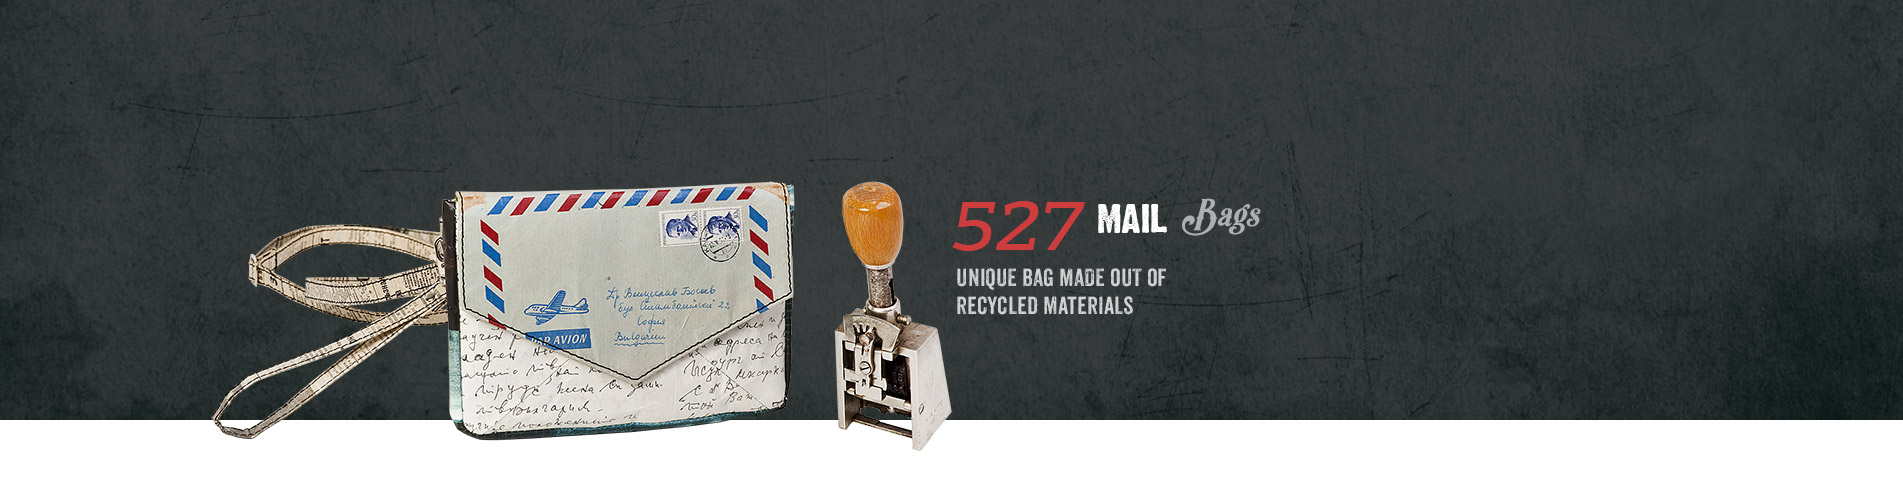 527 Mail Bags